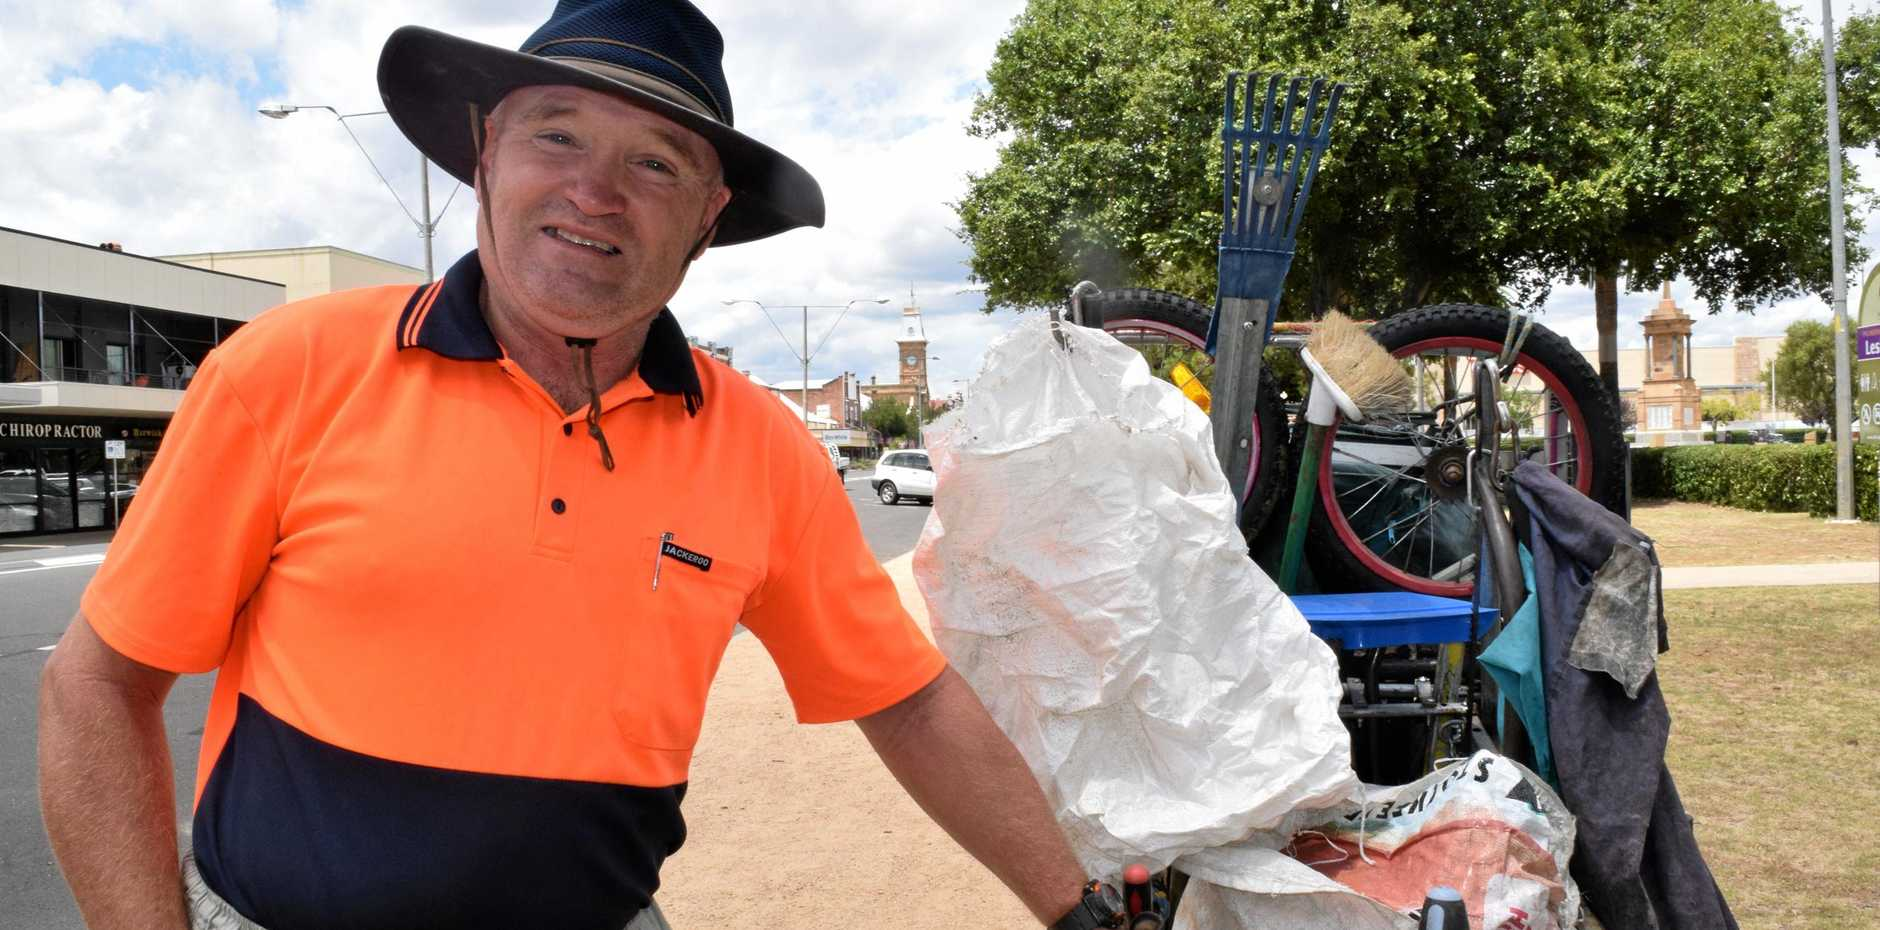 WELL DONE: The Rubbish Rambler, Leonard Monaghan will be honoured at today's Australia Day Award Ceremony.